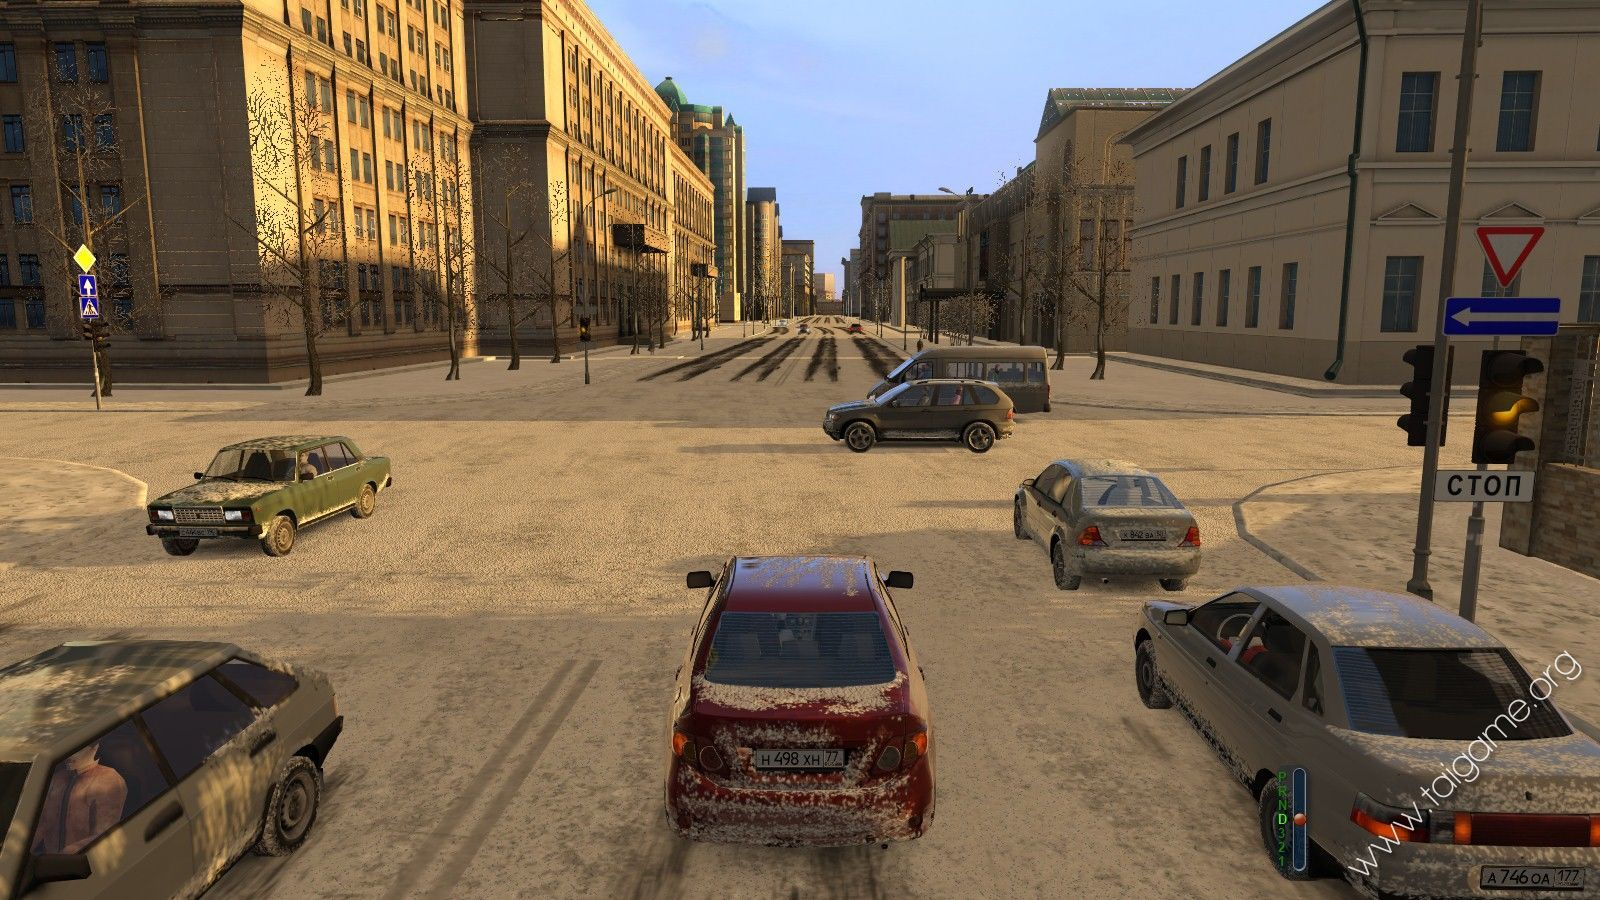 Free Download City Car Driving Simulator For Pc